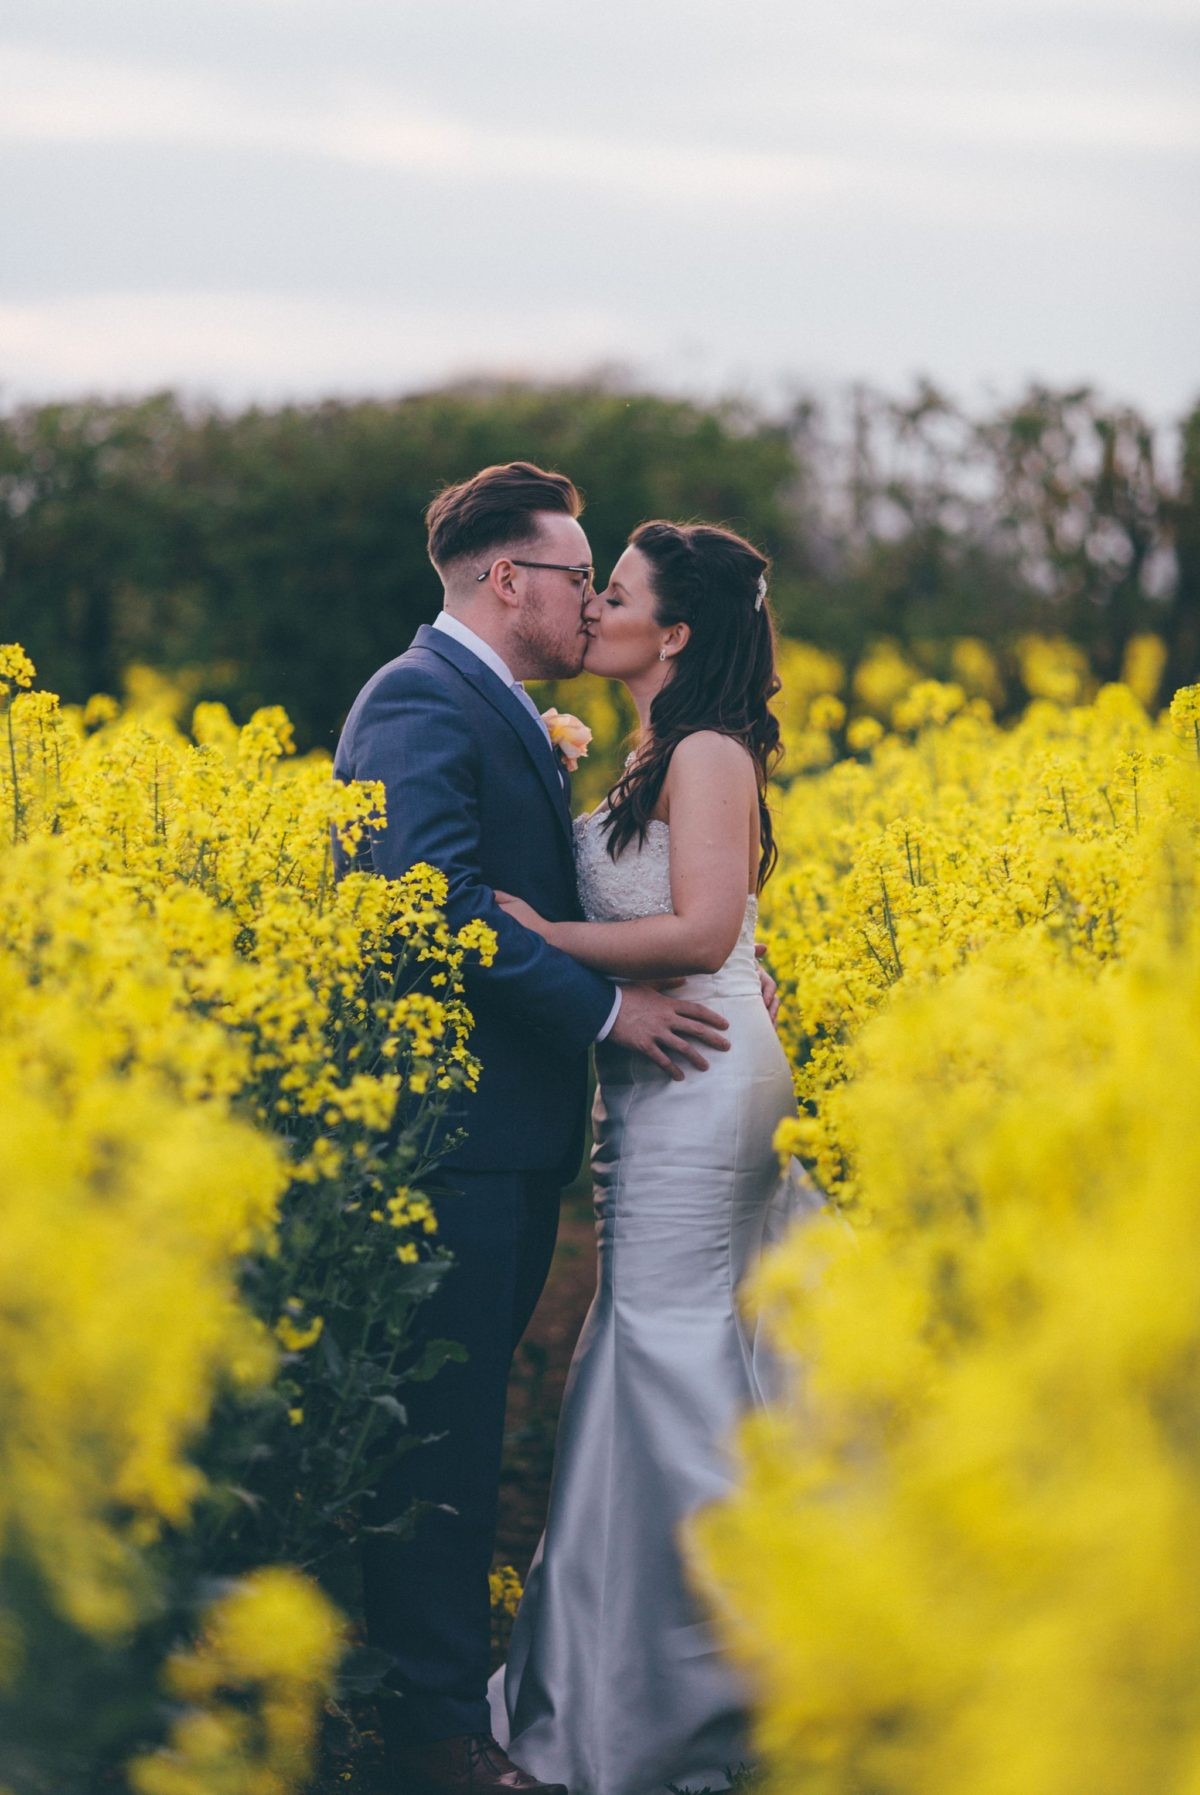 cripps_barn_gloucesterhsire_welsh_wedding_photographer_rachel_lambert_photography_jordan_amy_ 126